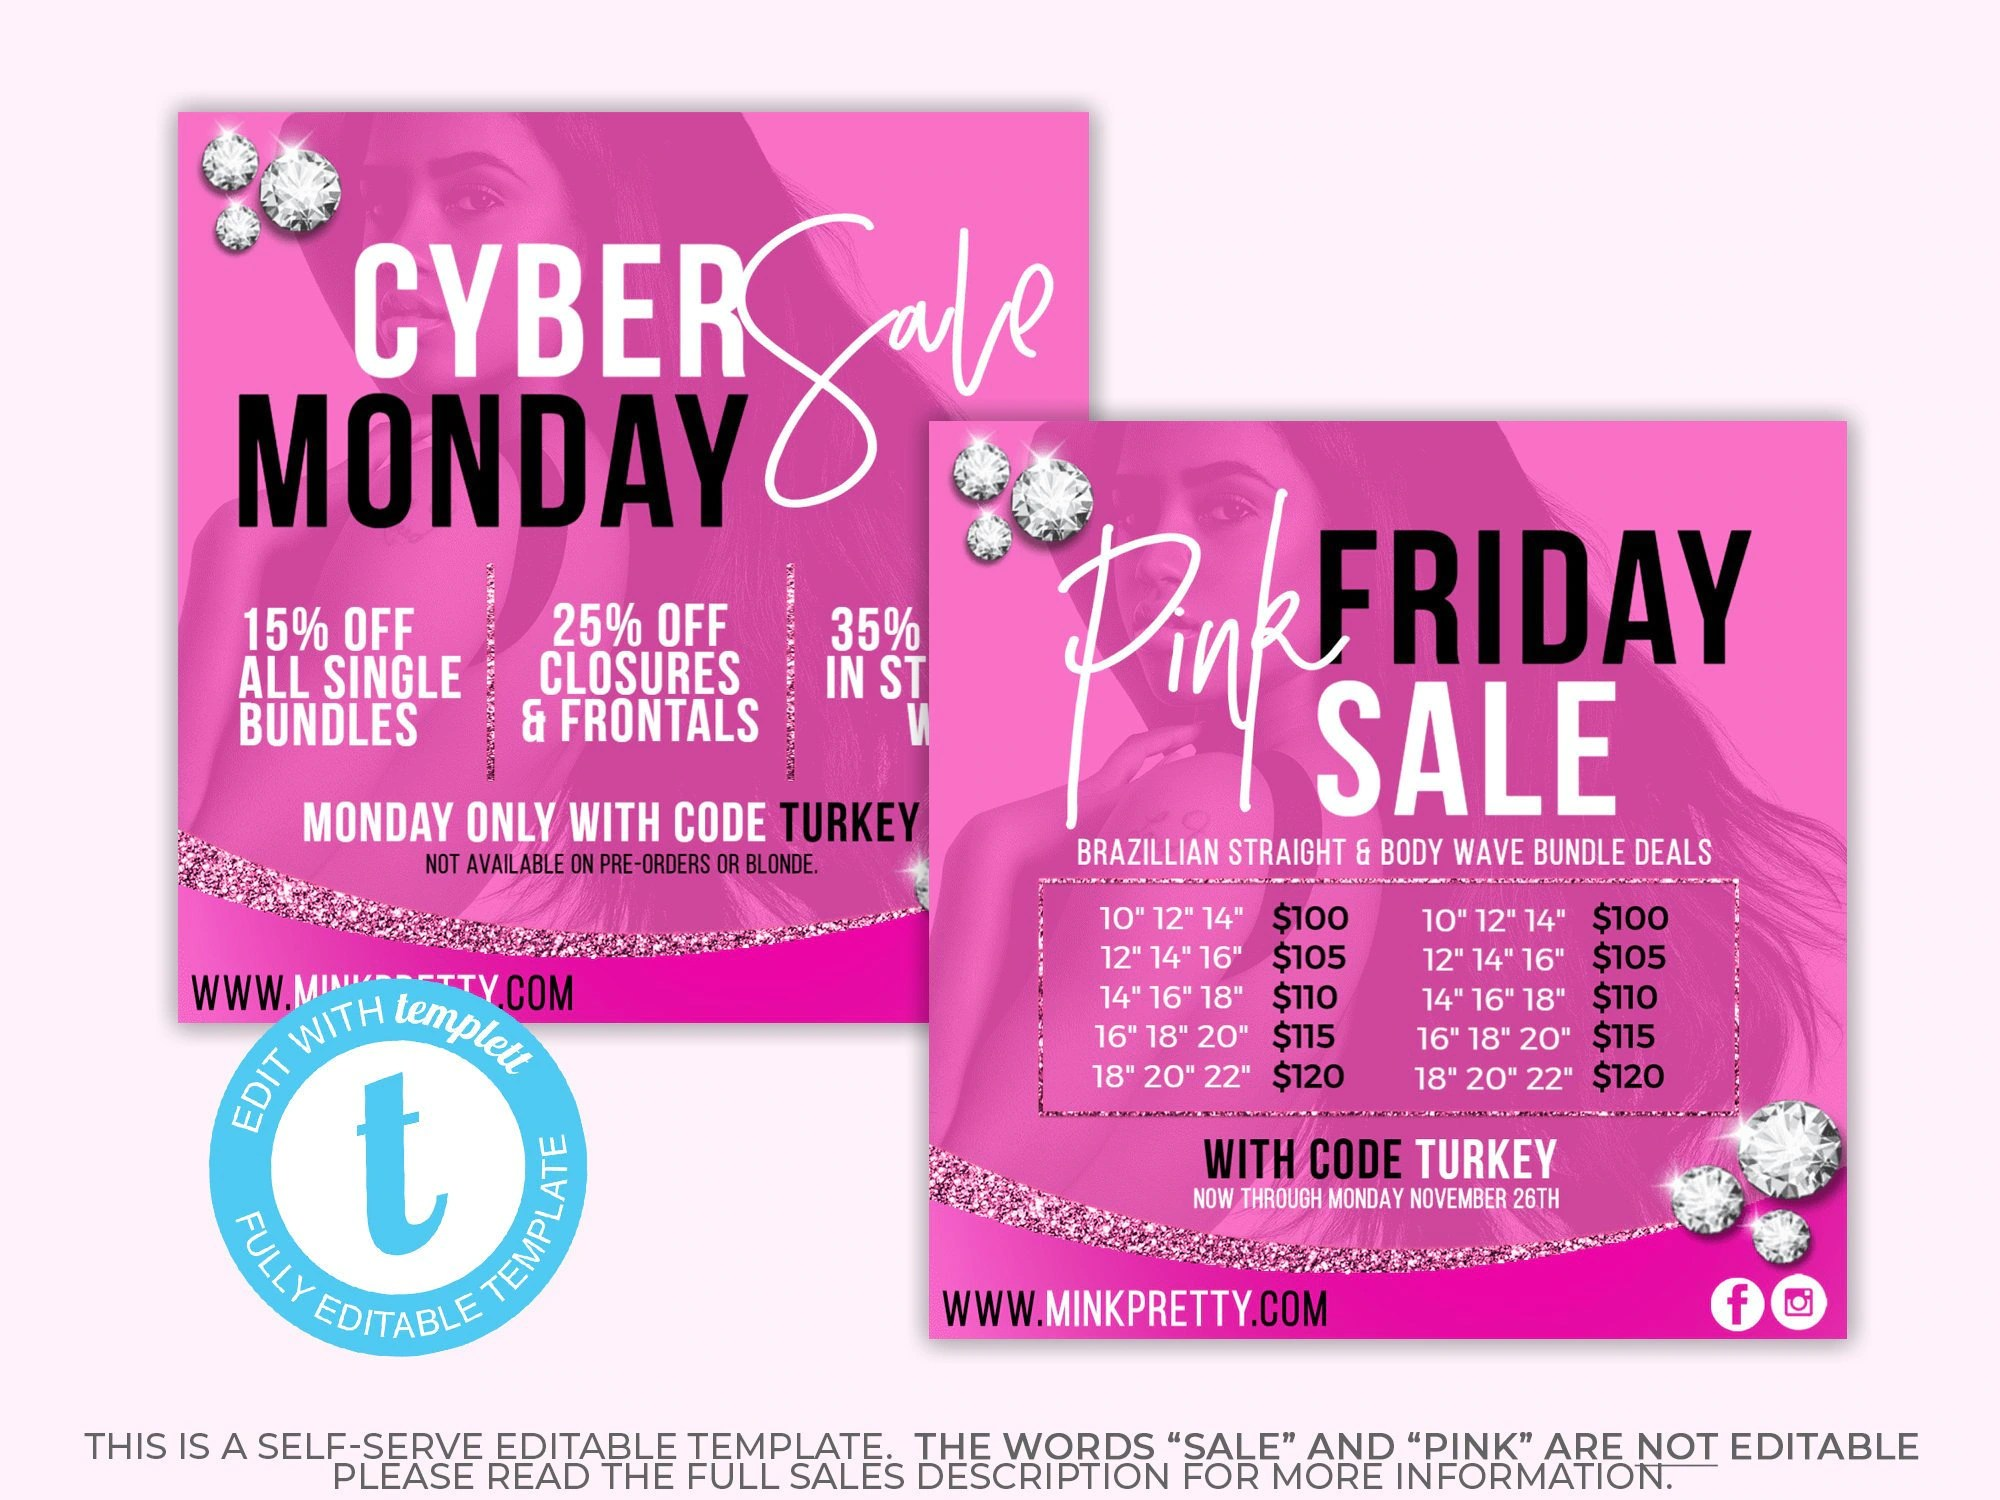 Ah Black Friday Black Friday Bundle Deals Template Pink Friday Hair Extensions Digital Flyer Cyber Monday Instagram Ad Hair Business Promo Branding